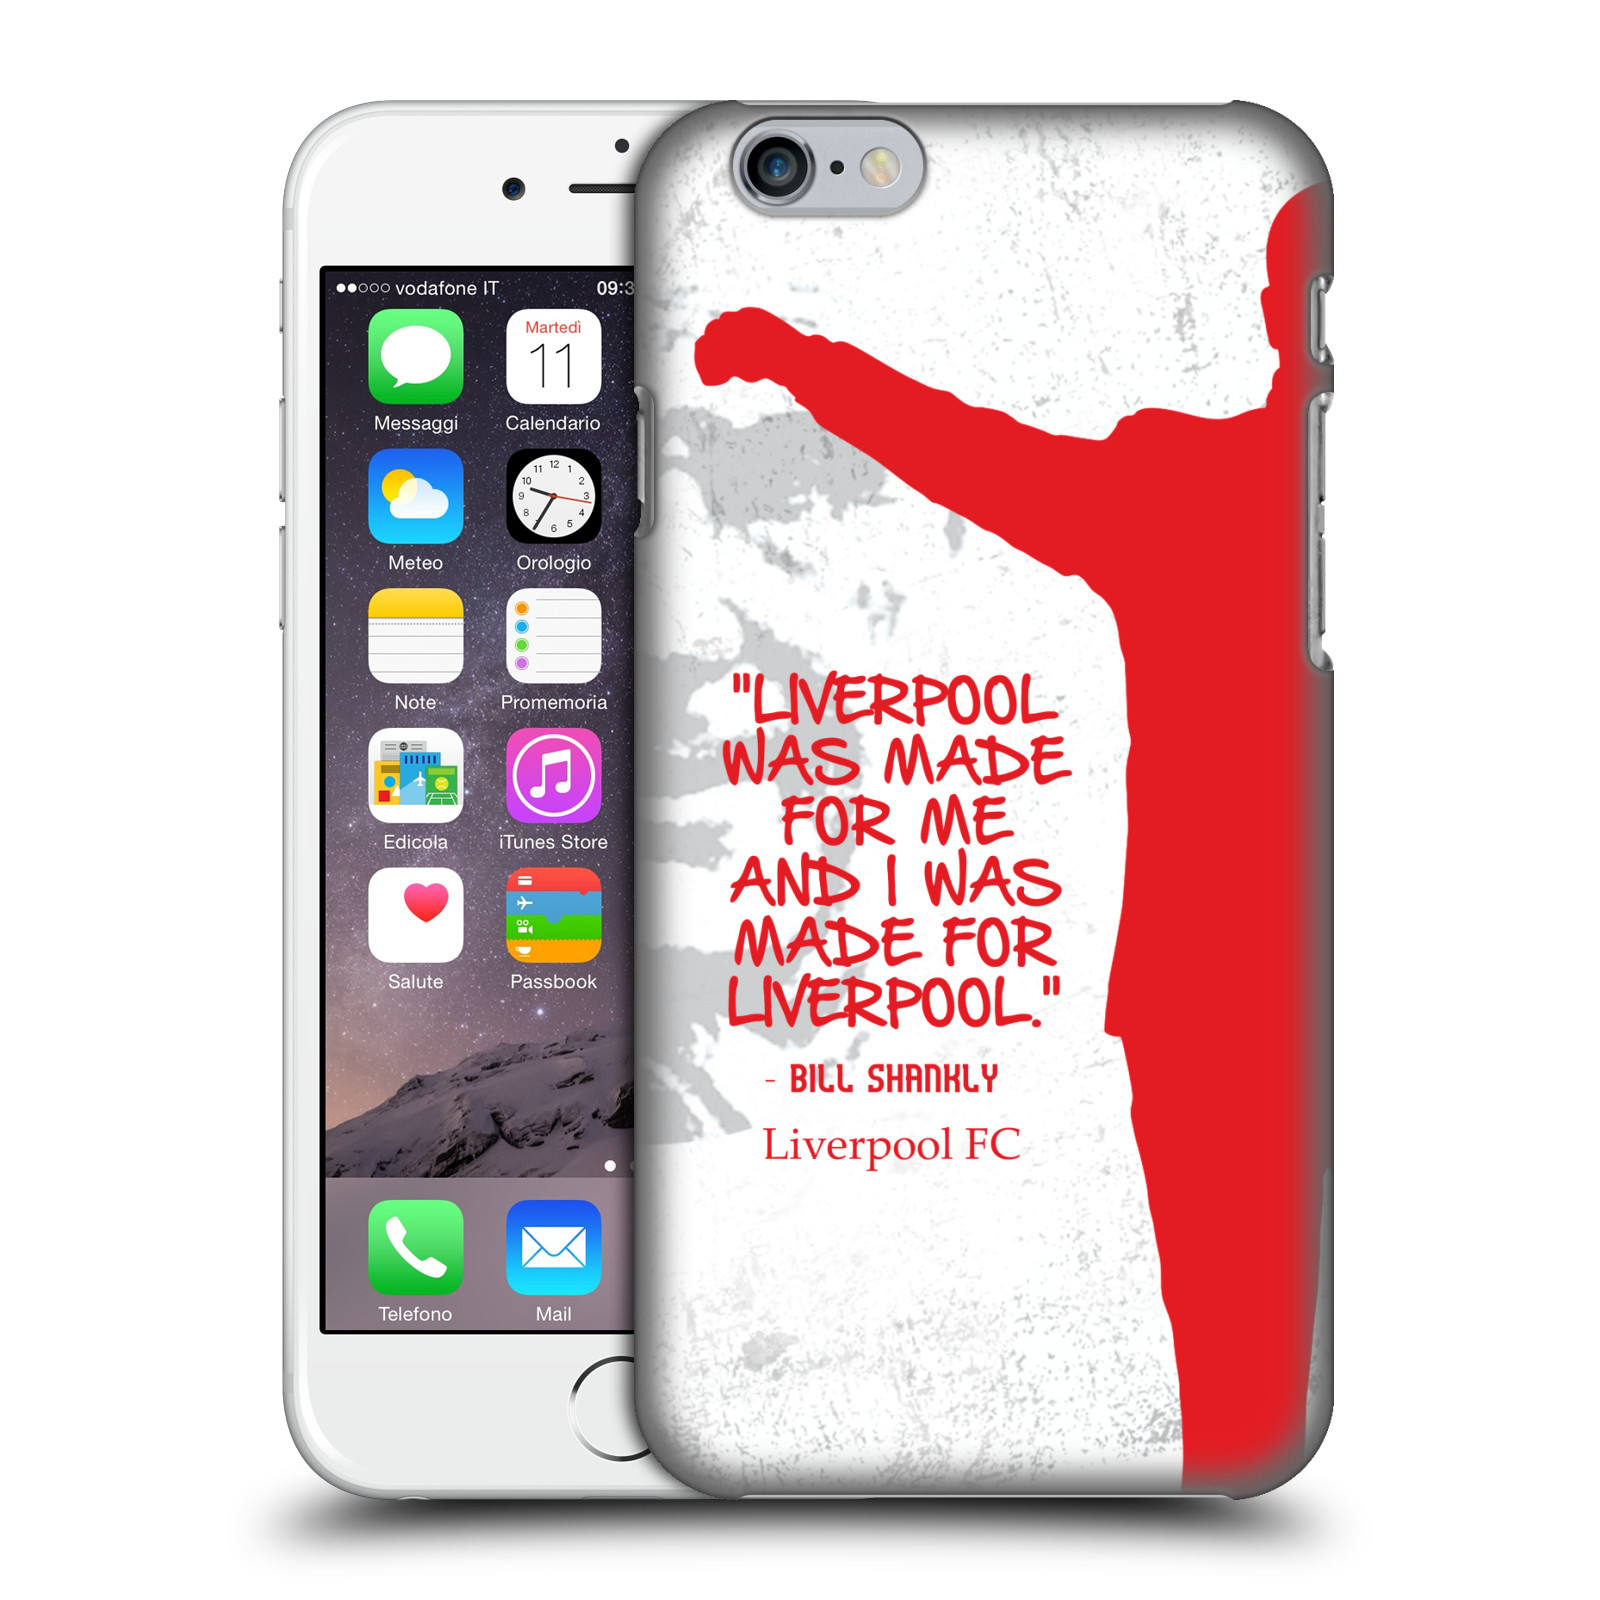 Liverpool FC LFC Bill Shankly Quotes-Made For Liverpool